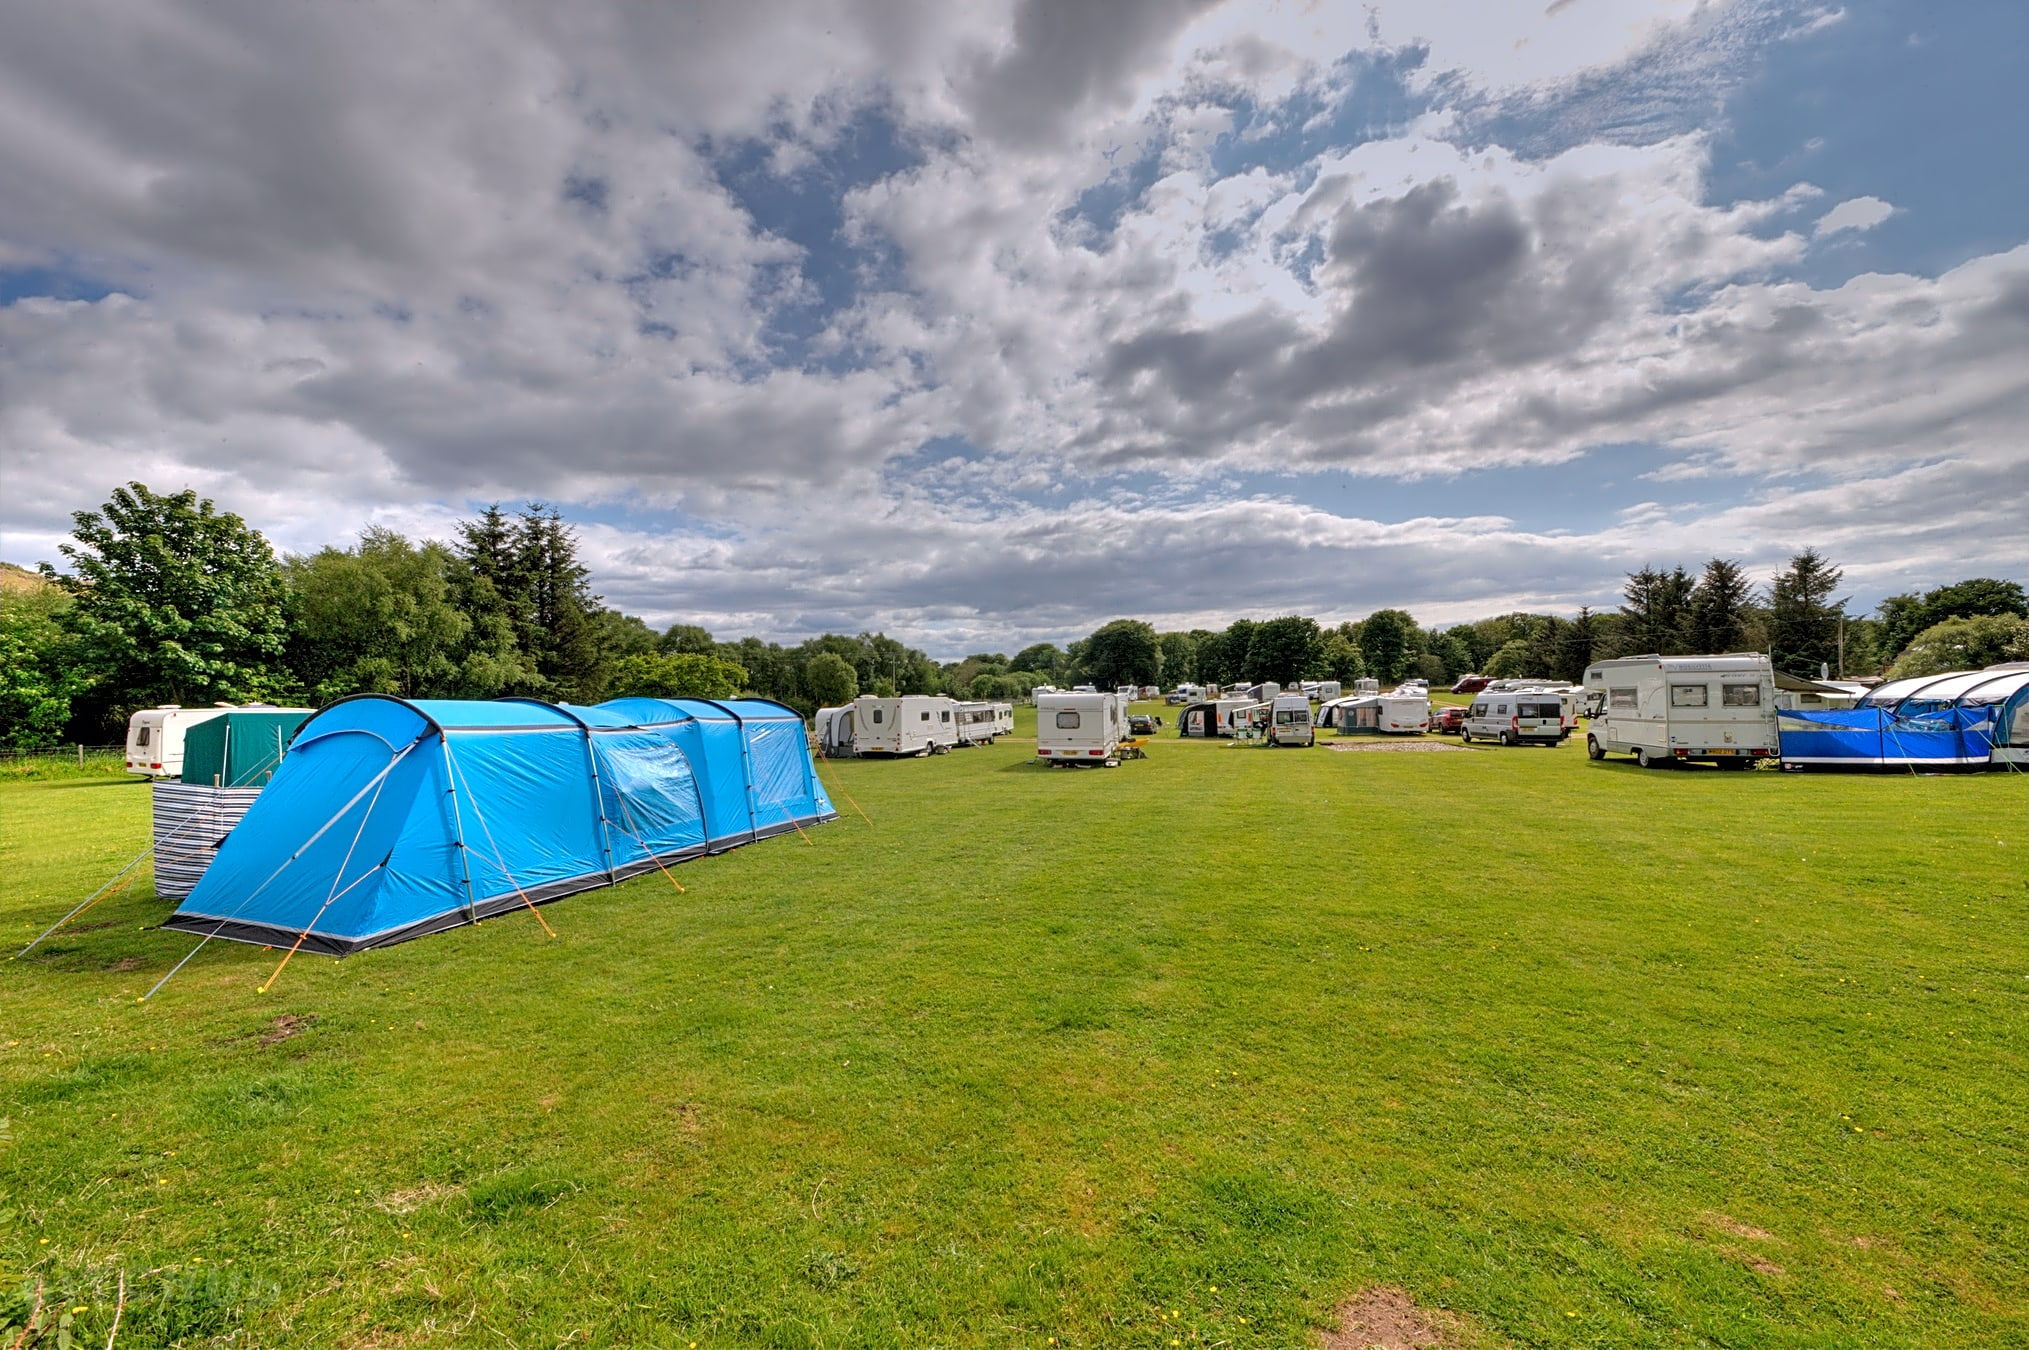 Level grass pitches: plenty of space